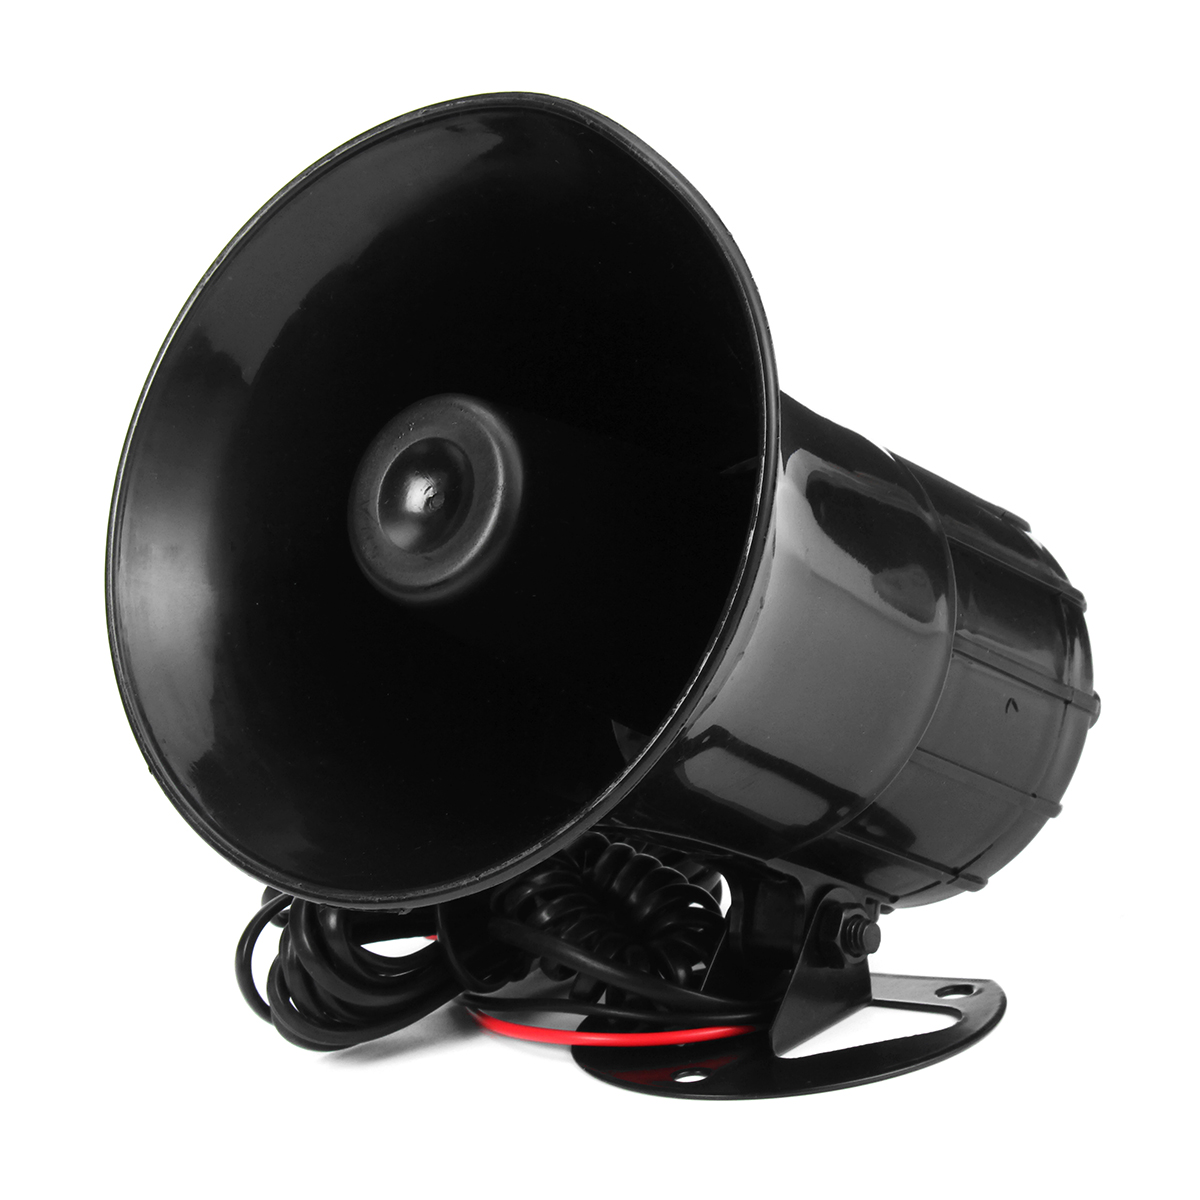 7 Sound 12V Universal Car Alarm Loud Horn Warning Alarm police Fire Siren Car Alarm Loud Speaker 30W/50W/100W ...